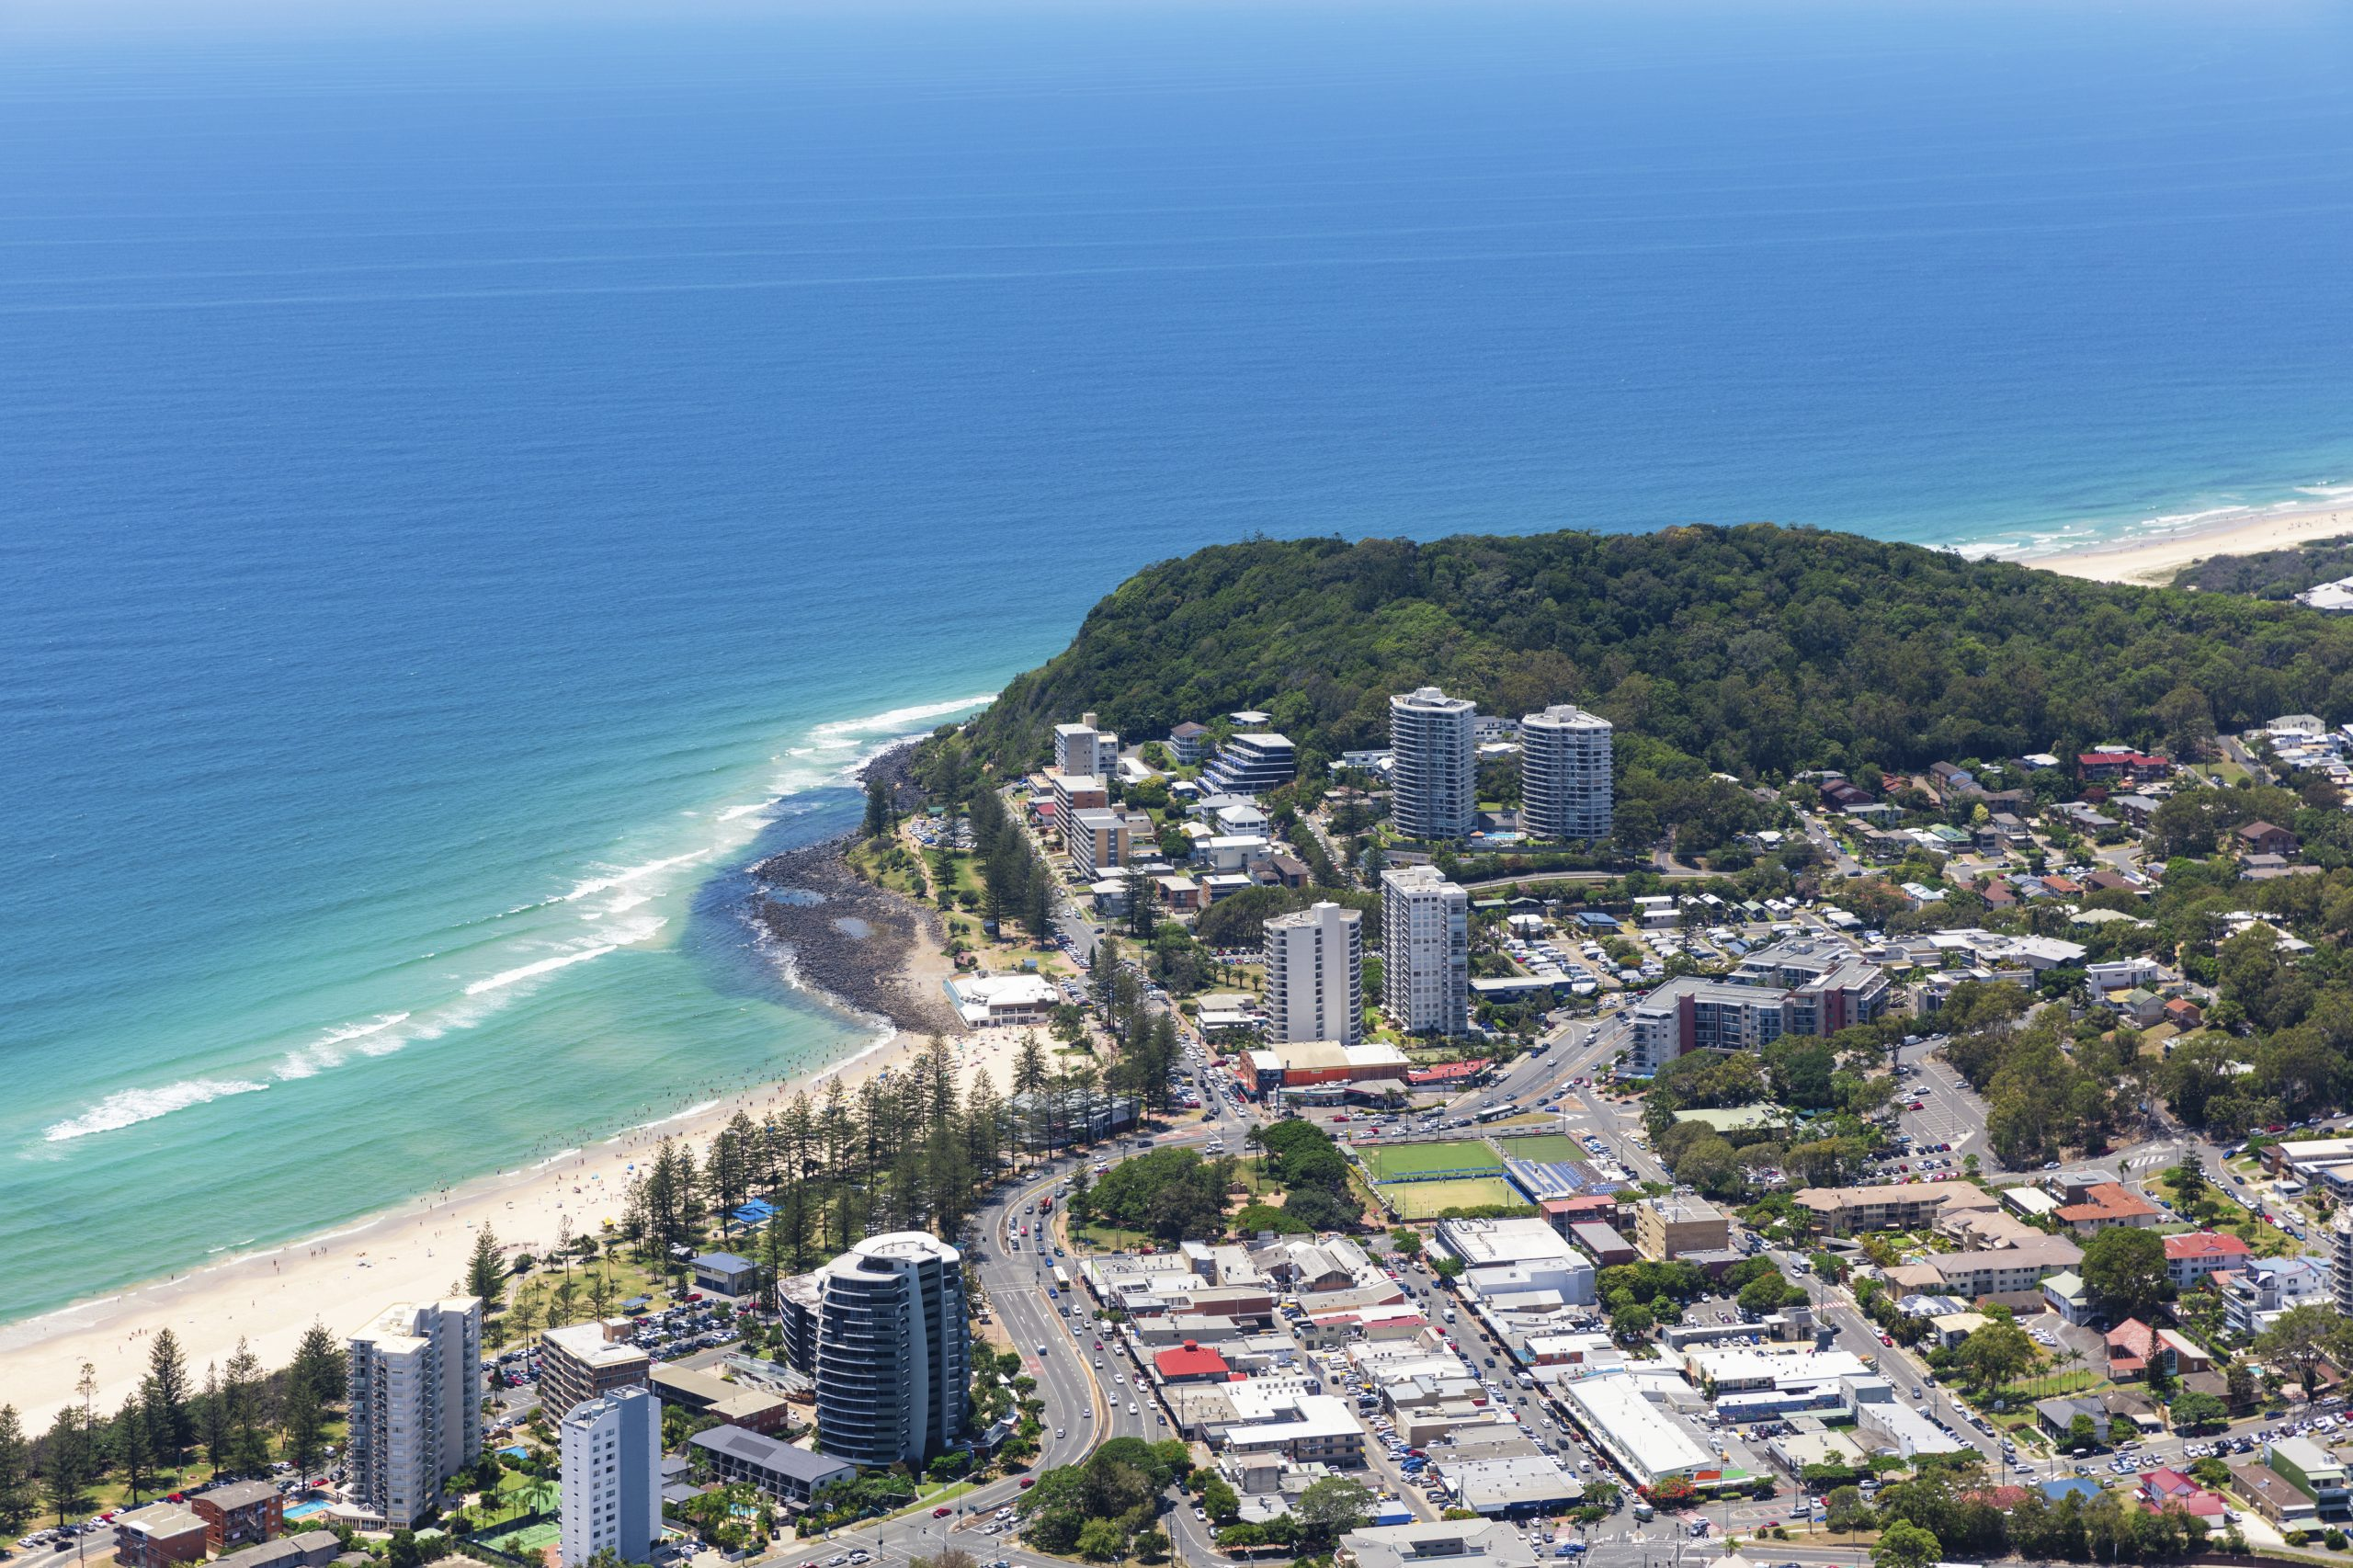 Sunny view of Burleigh Heads on the Gold Coast